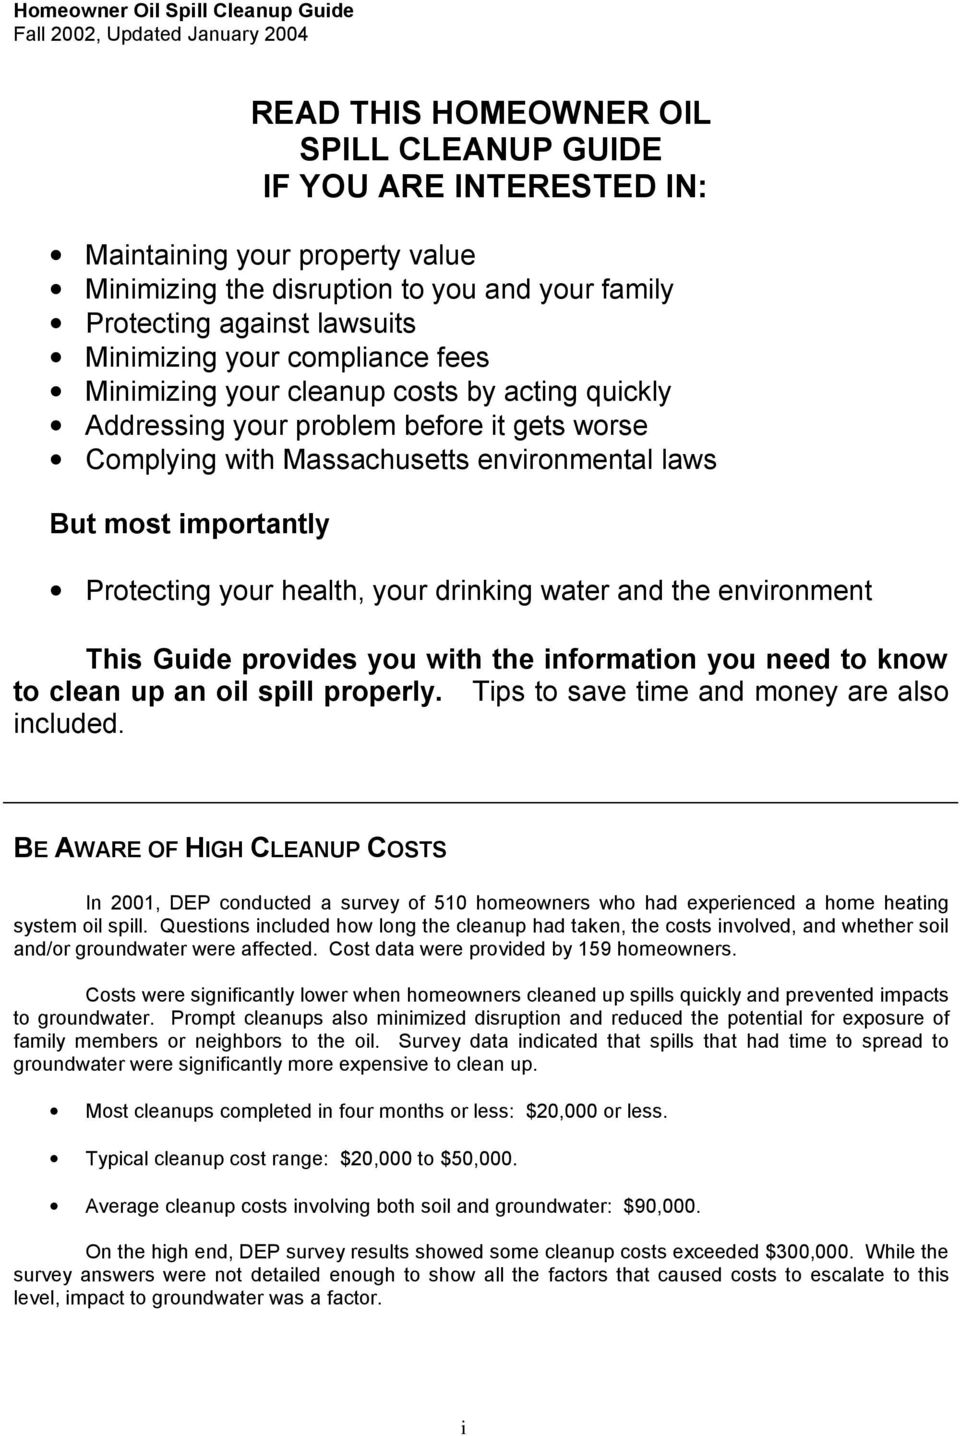 health, your drinking water and the environment This Guide provides you with the information you need to know to clean up an oil spill properly. Tips to save time and money are also included.